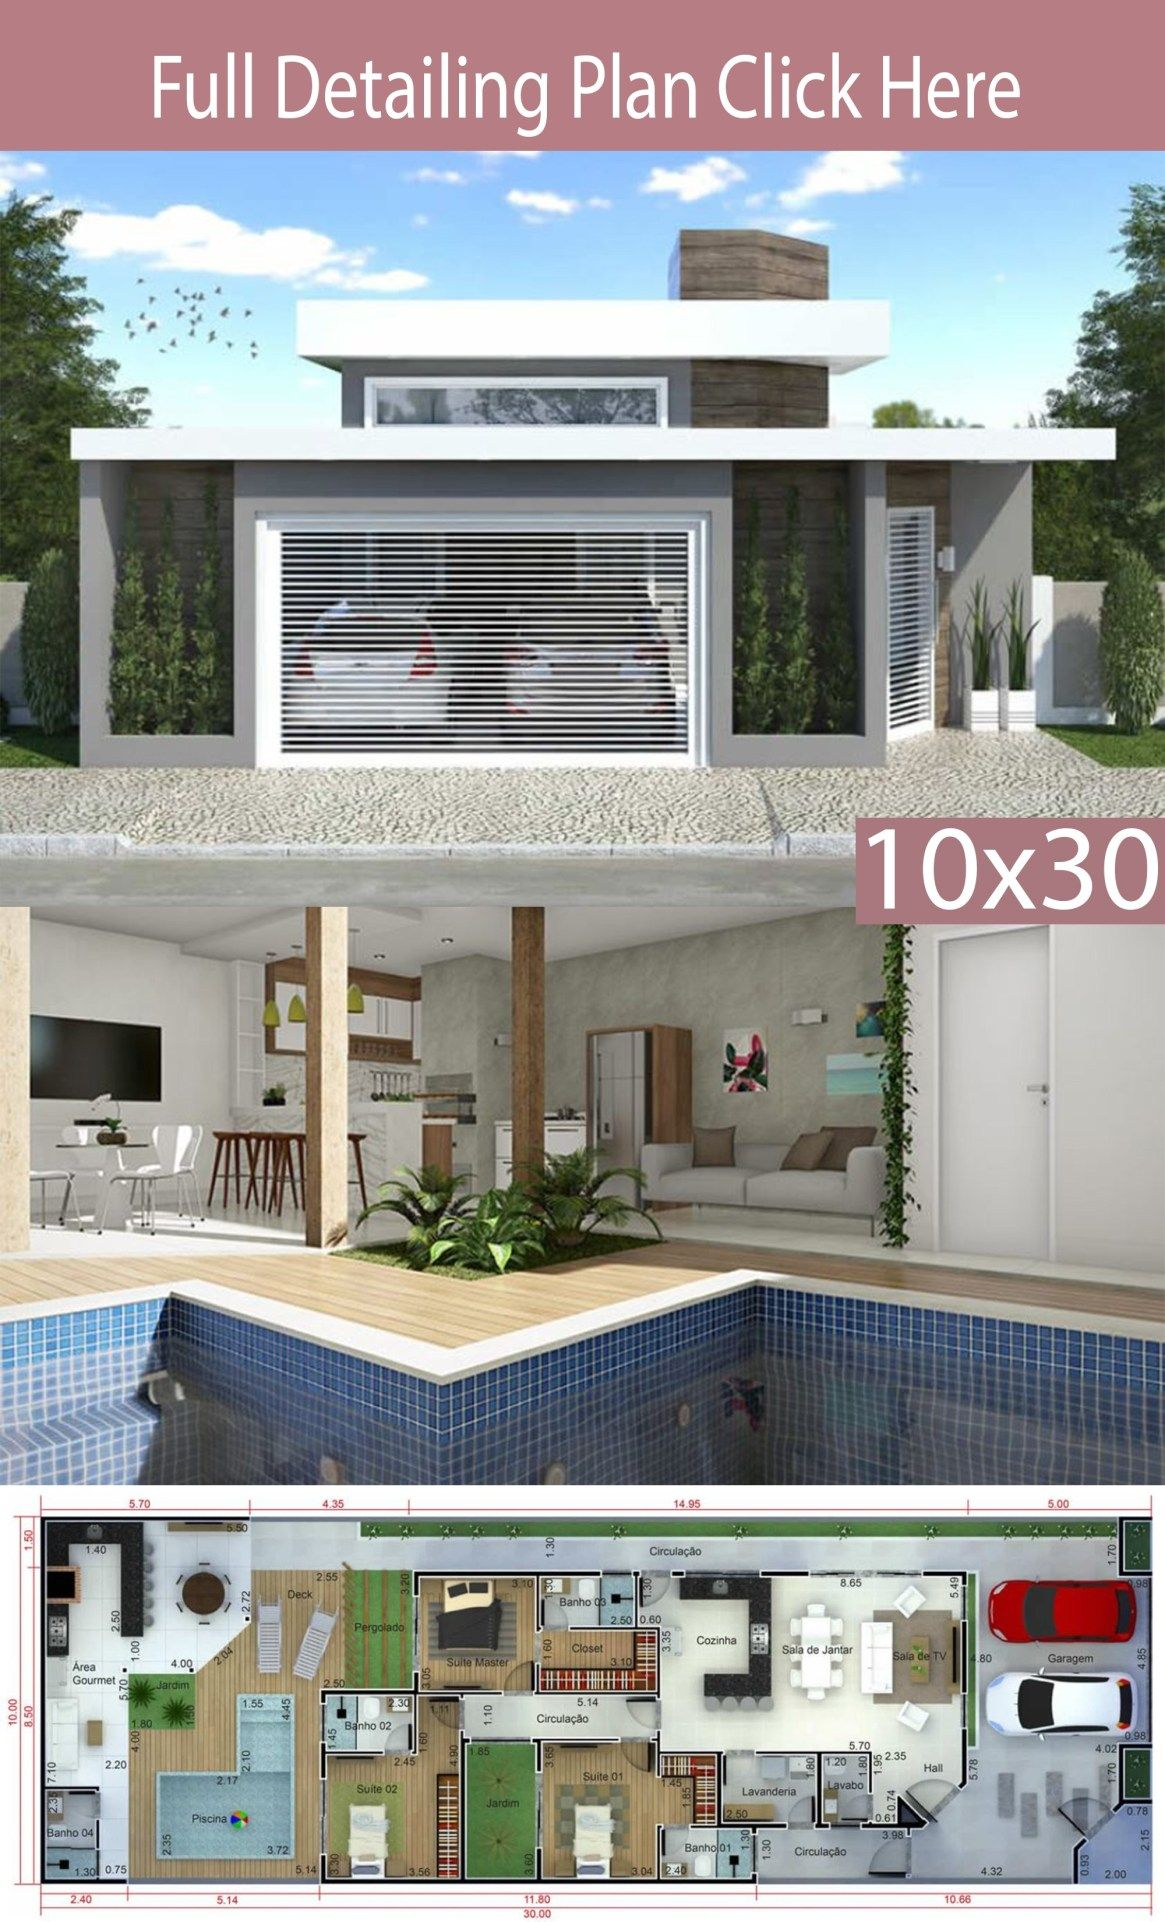 Home Design 10x30m With 3 Bedrooms Home Design With Plansearch Small House Design Plans Modern House Floor Plans House Design